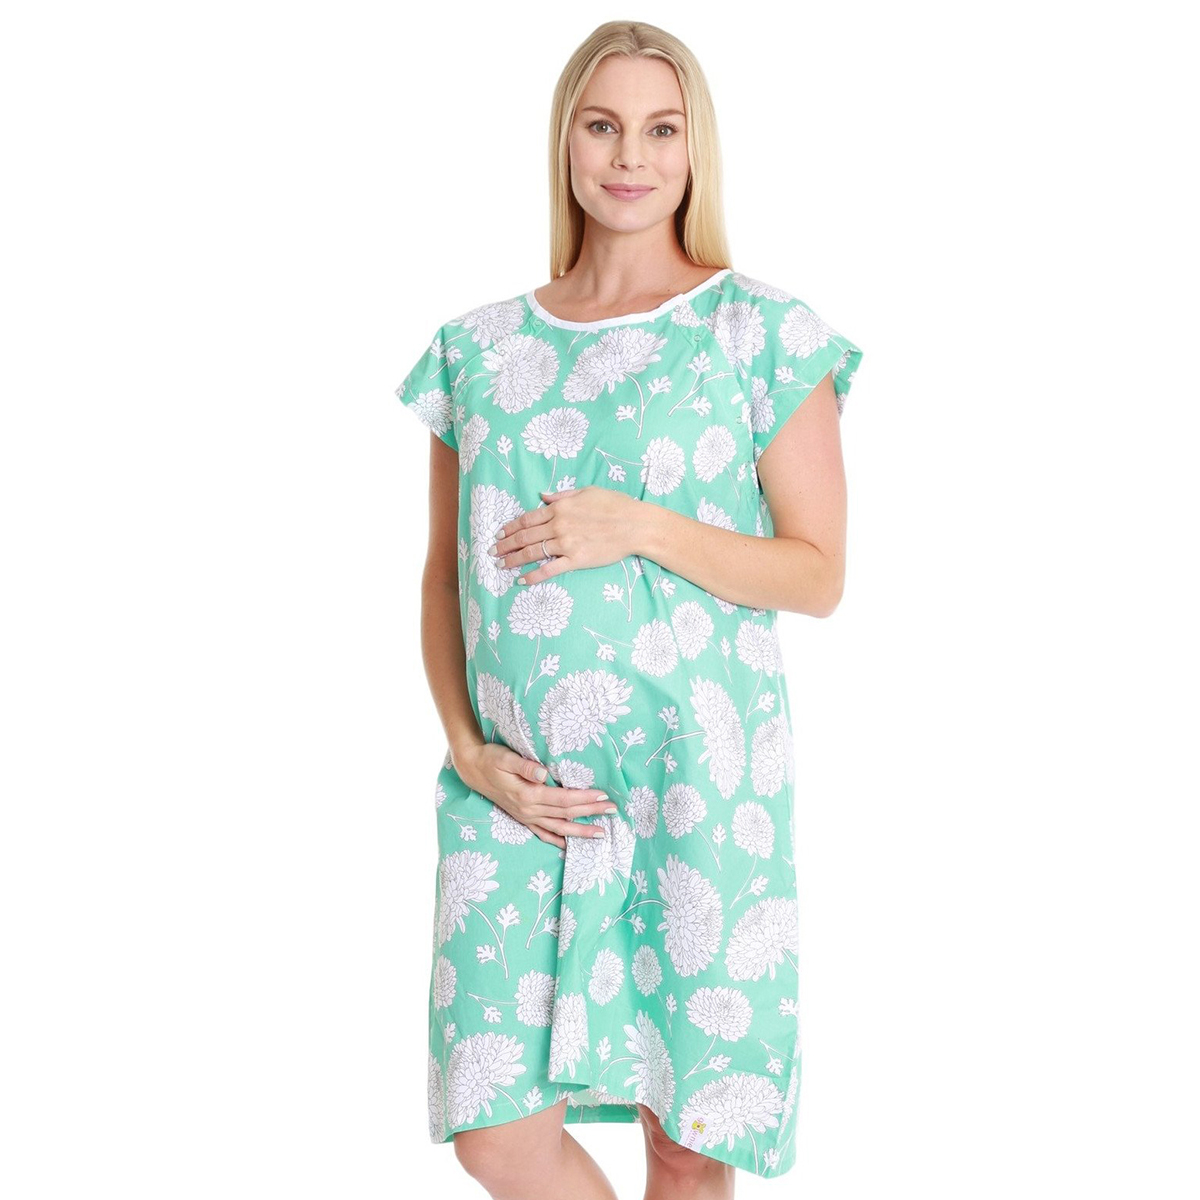 Gownies Hannah Labor & Delivery Gown, Amazon, $30 -